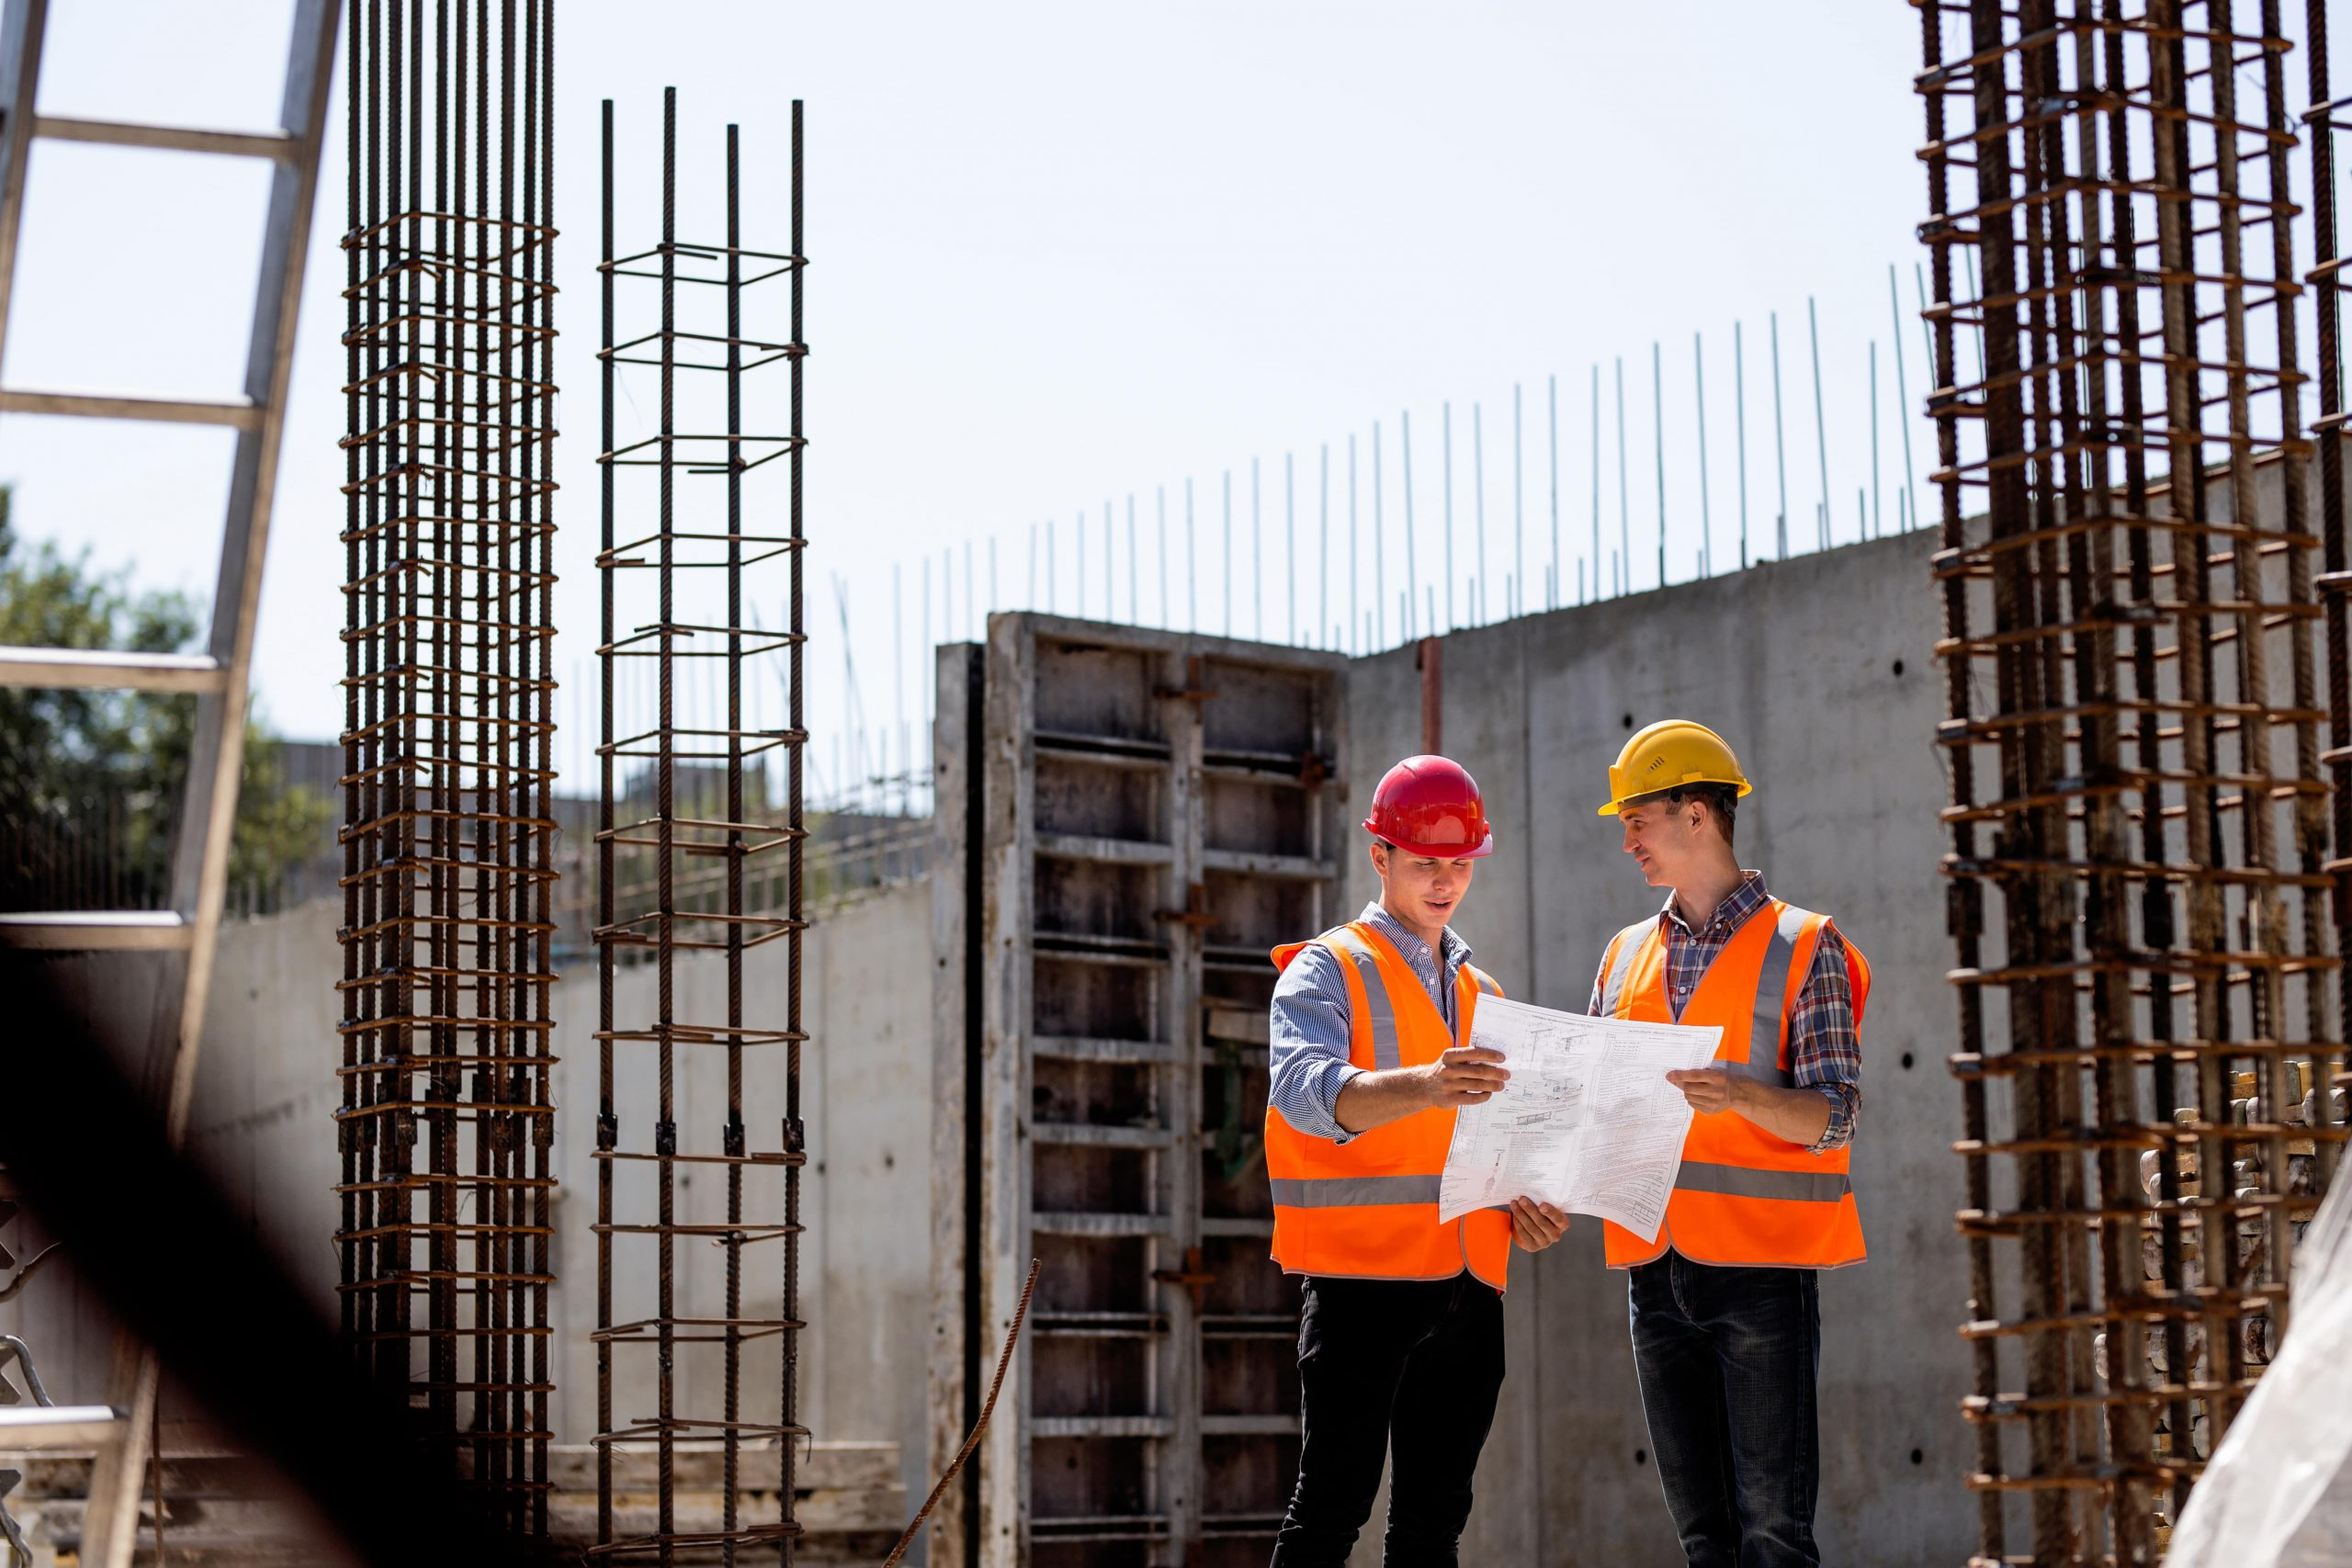 Construction Engineering and Infrastructure